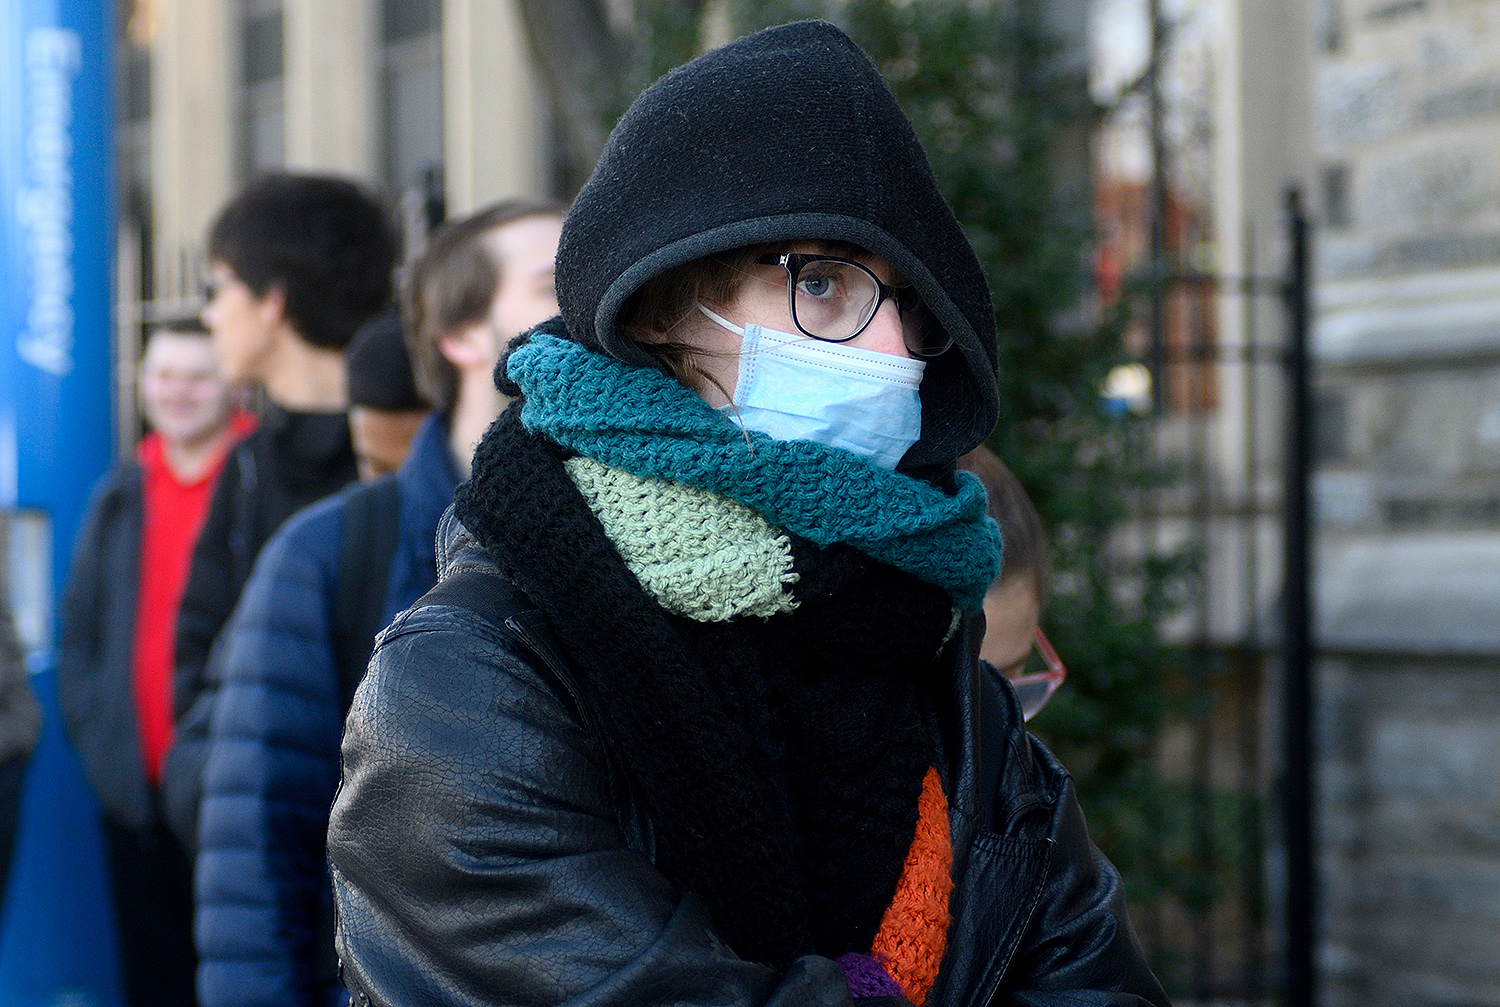 A female is seen wearing face mask